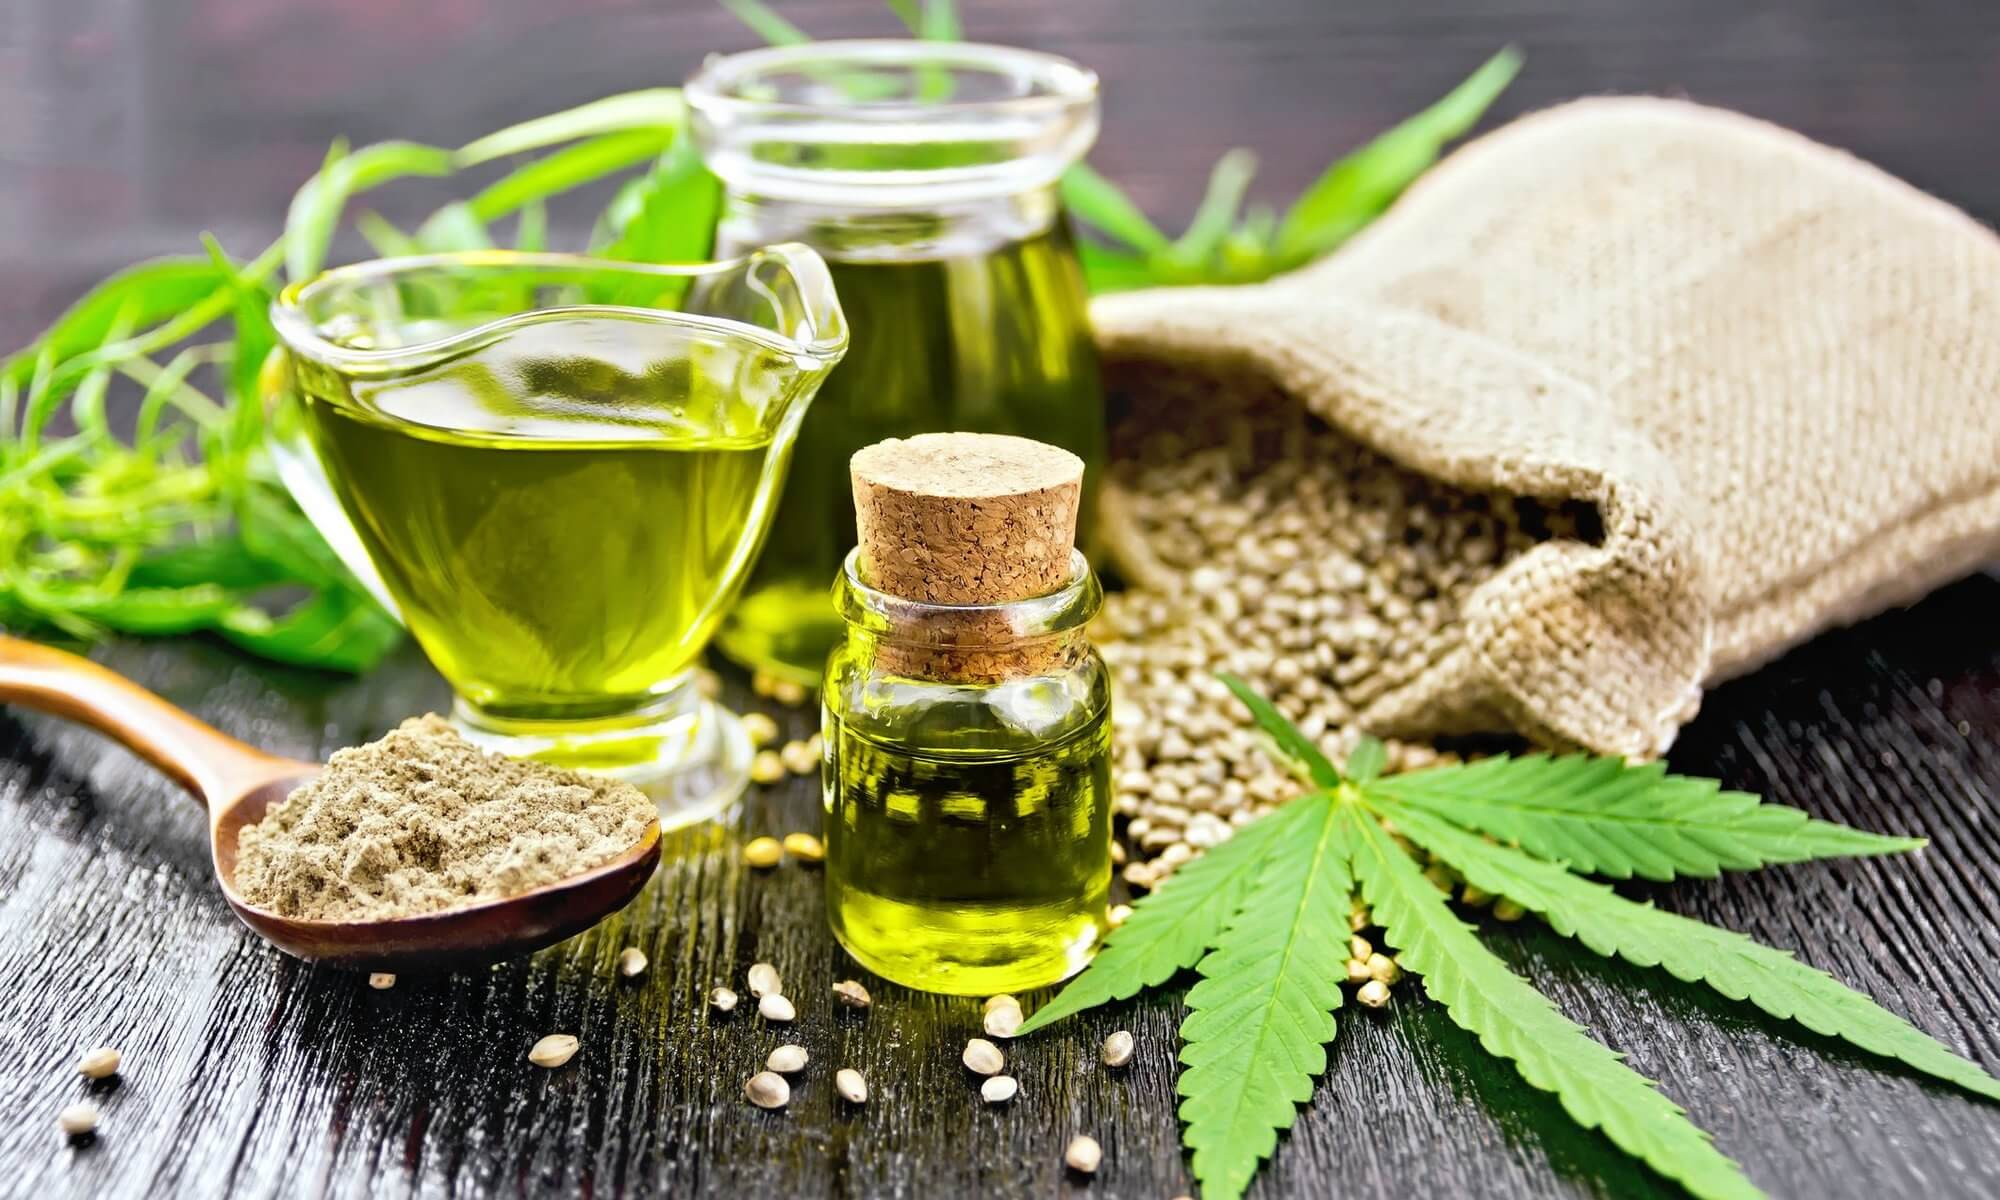 Pure CBD Oil: What is it and How is it Made in Canada?